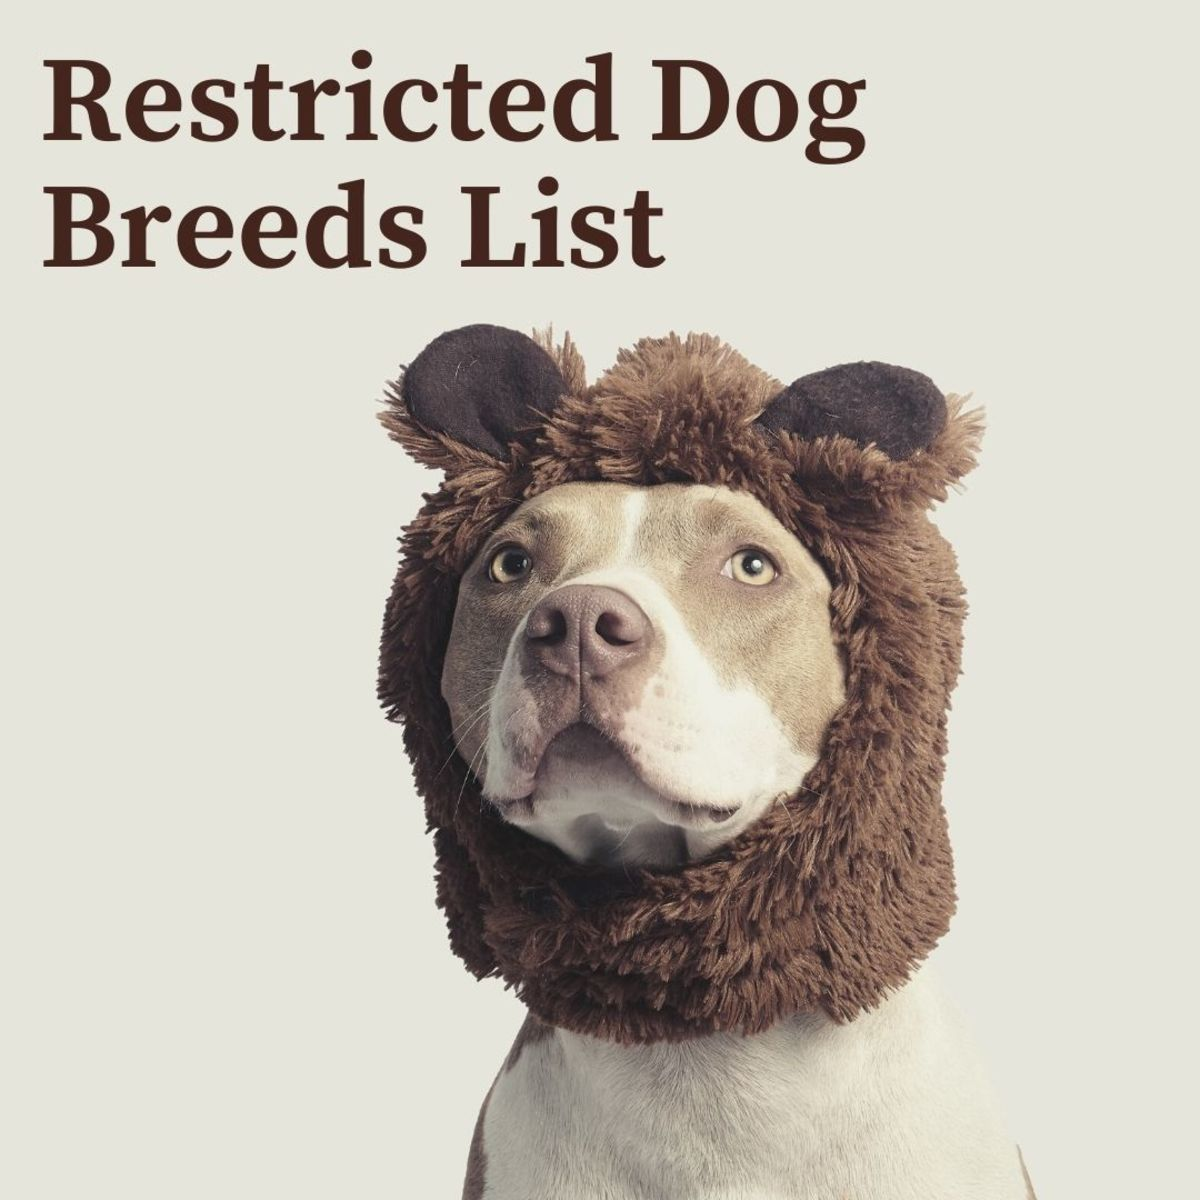 75 Banned or Restricted Breeds: Is Your Dog on the List?